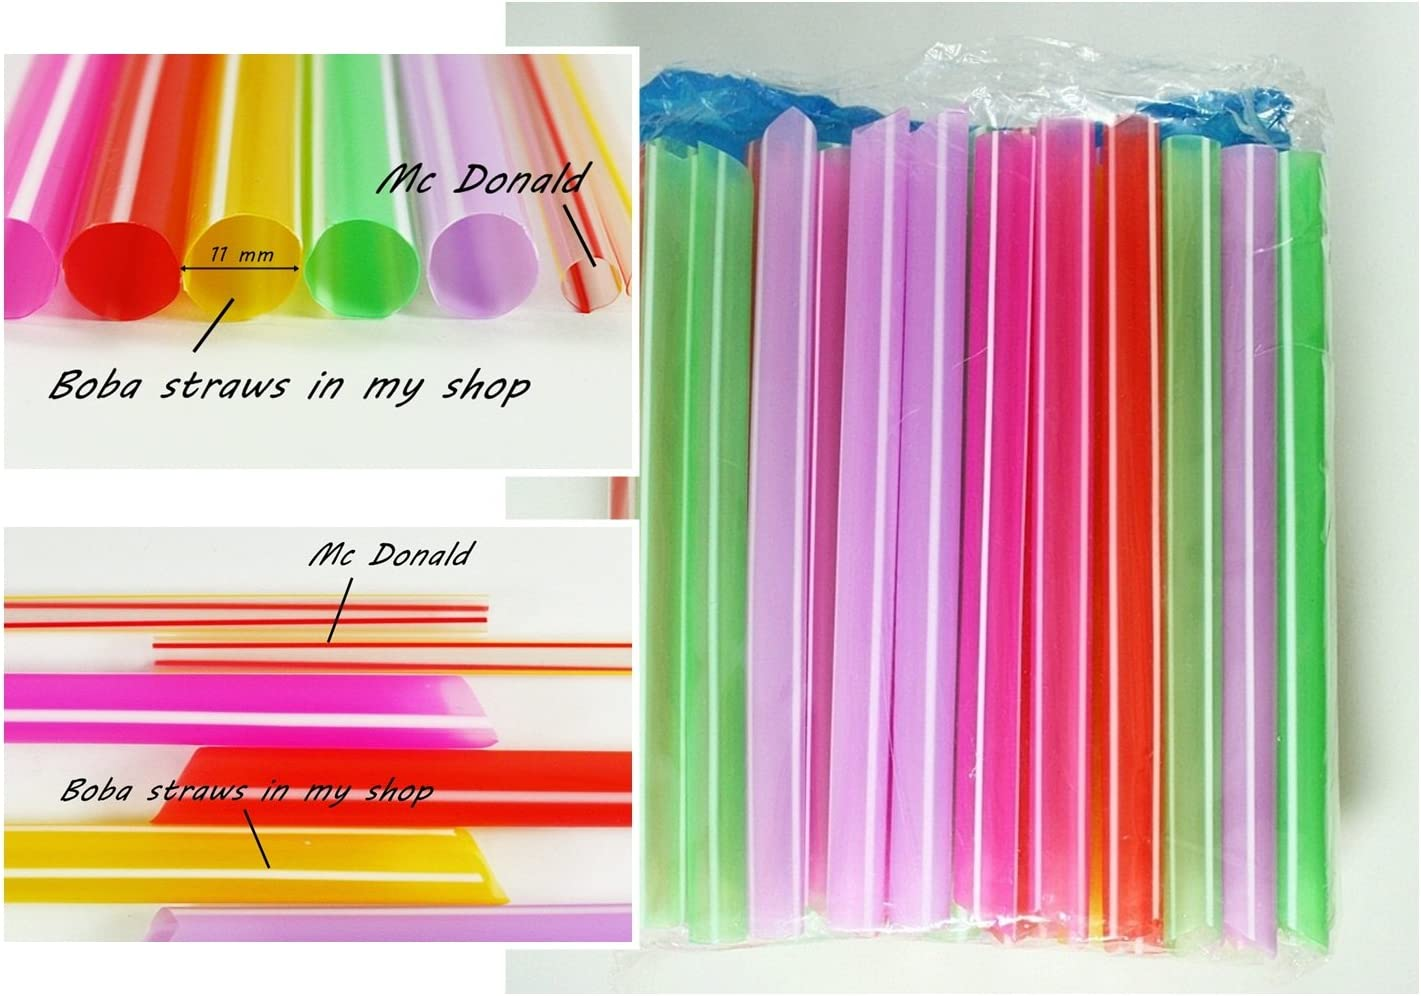 Lot of 50 Extra Wide Stainless Steel Boba Smoothie Straws